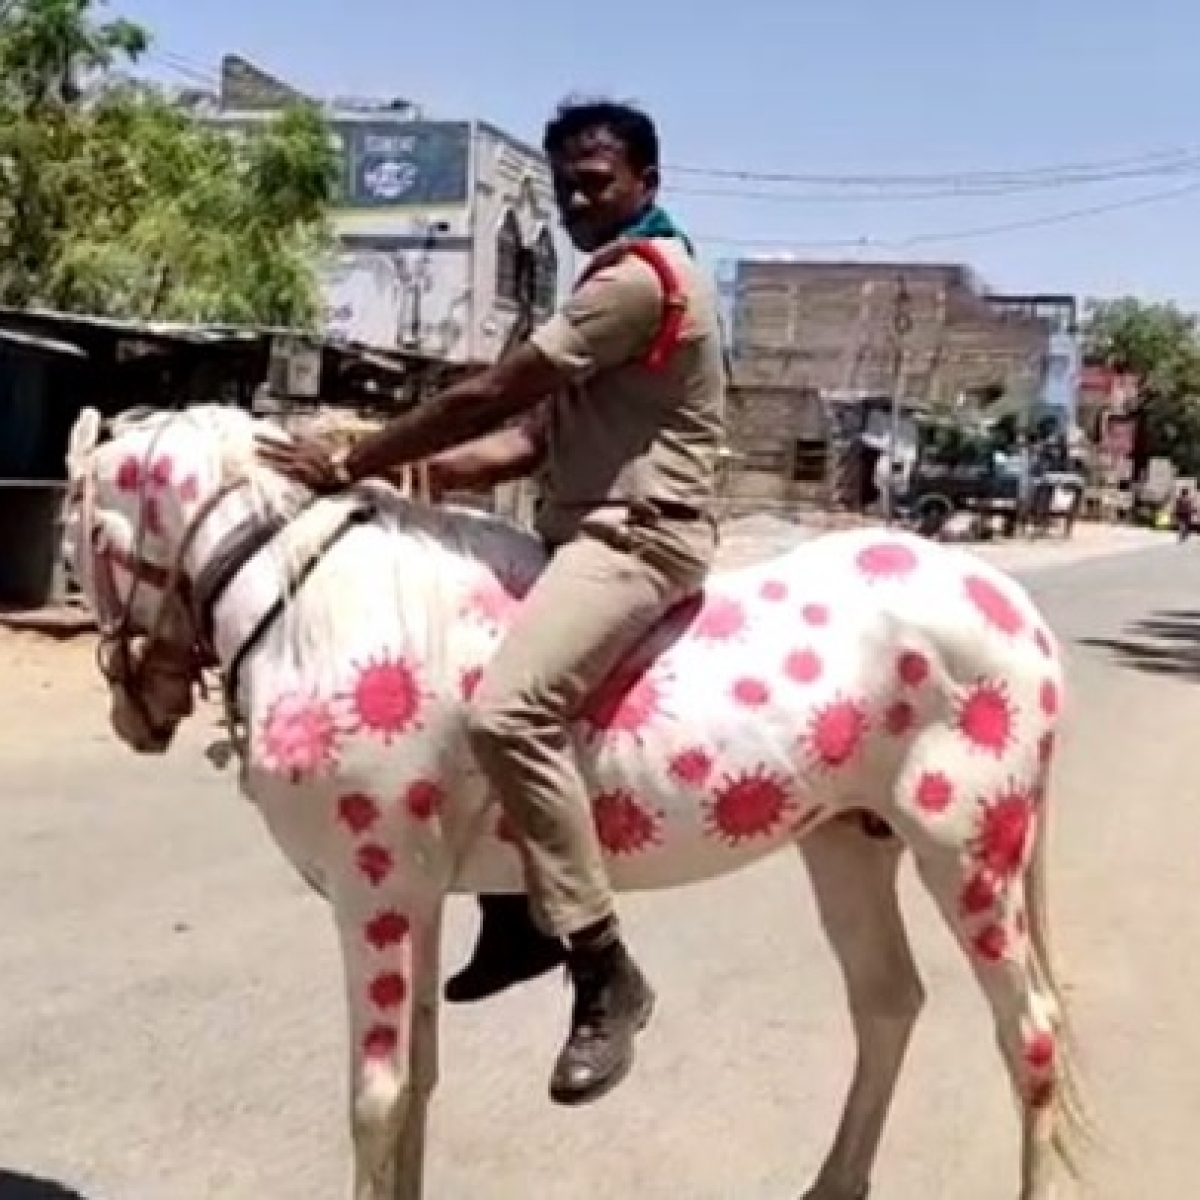 'Animal cruelty': Twitter reacts to Andhra Pradesh cop riding a horse painted with images of COVID-19 virus